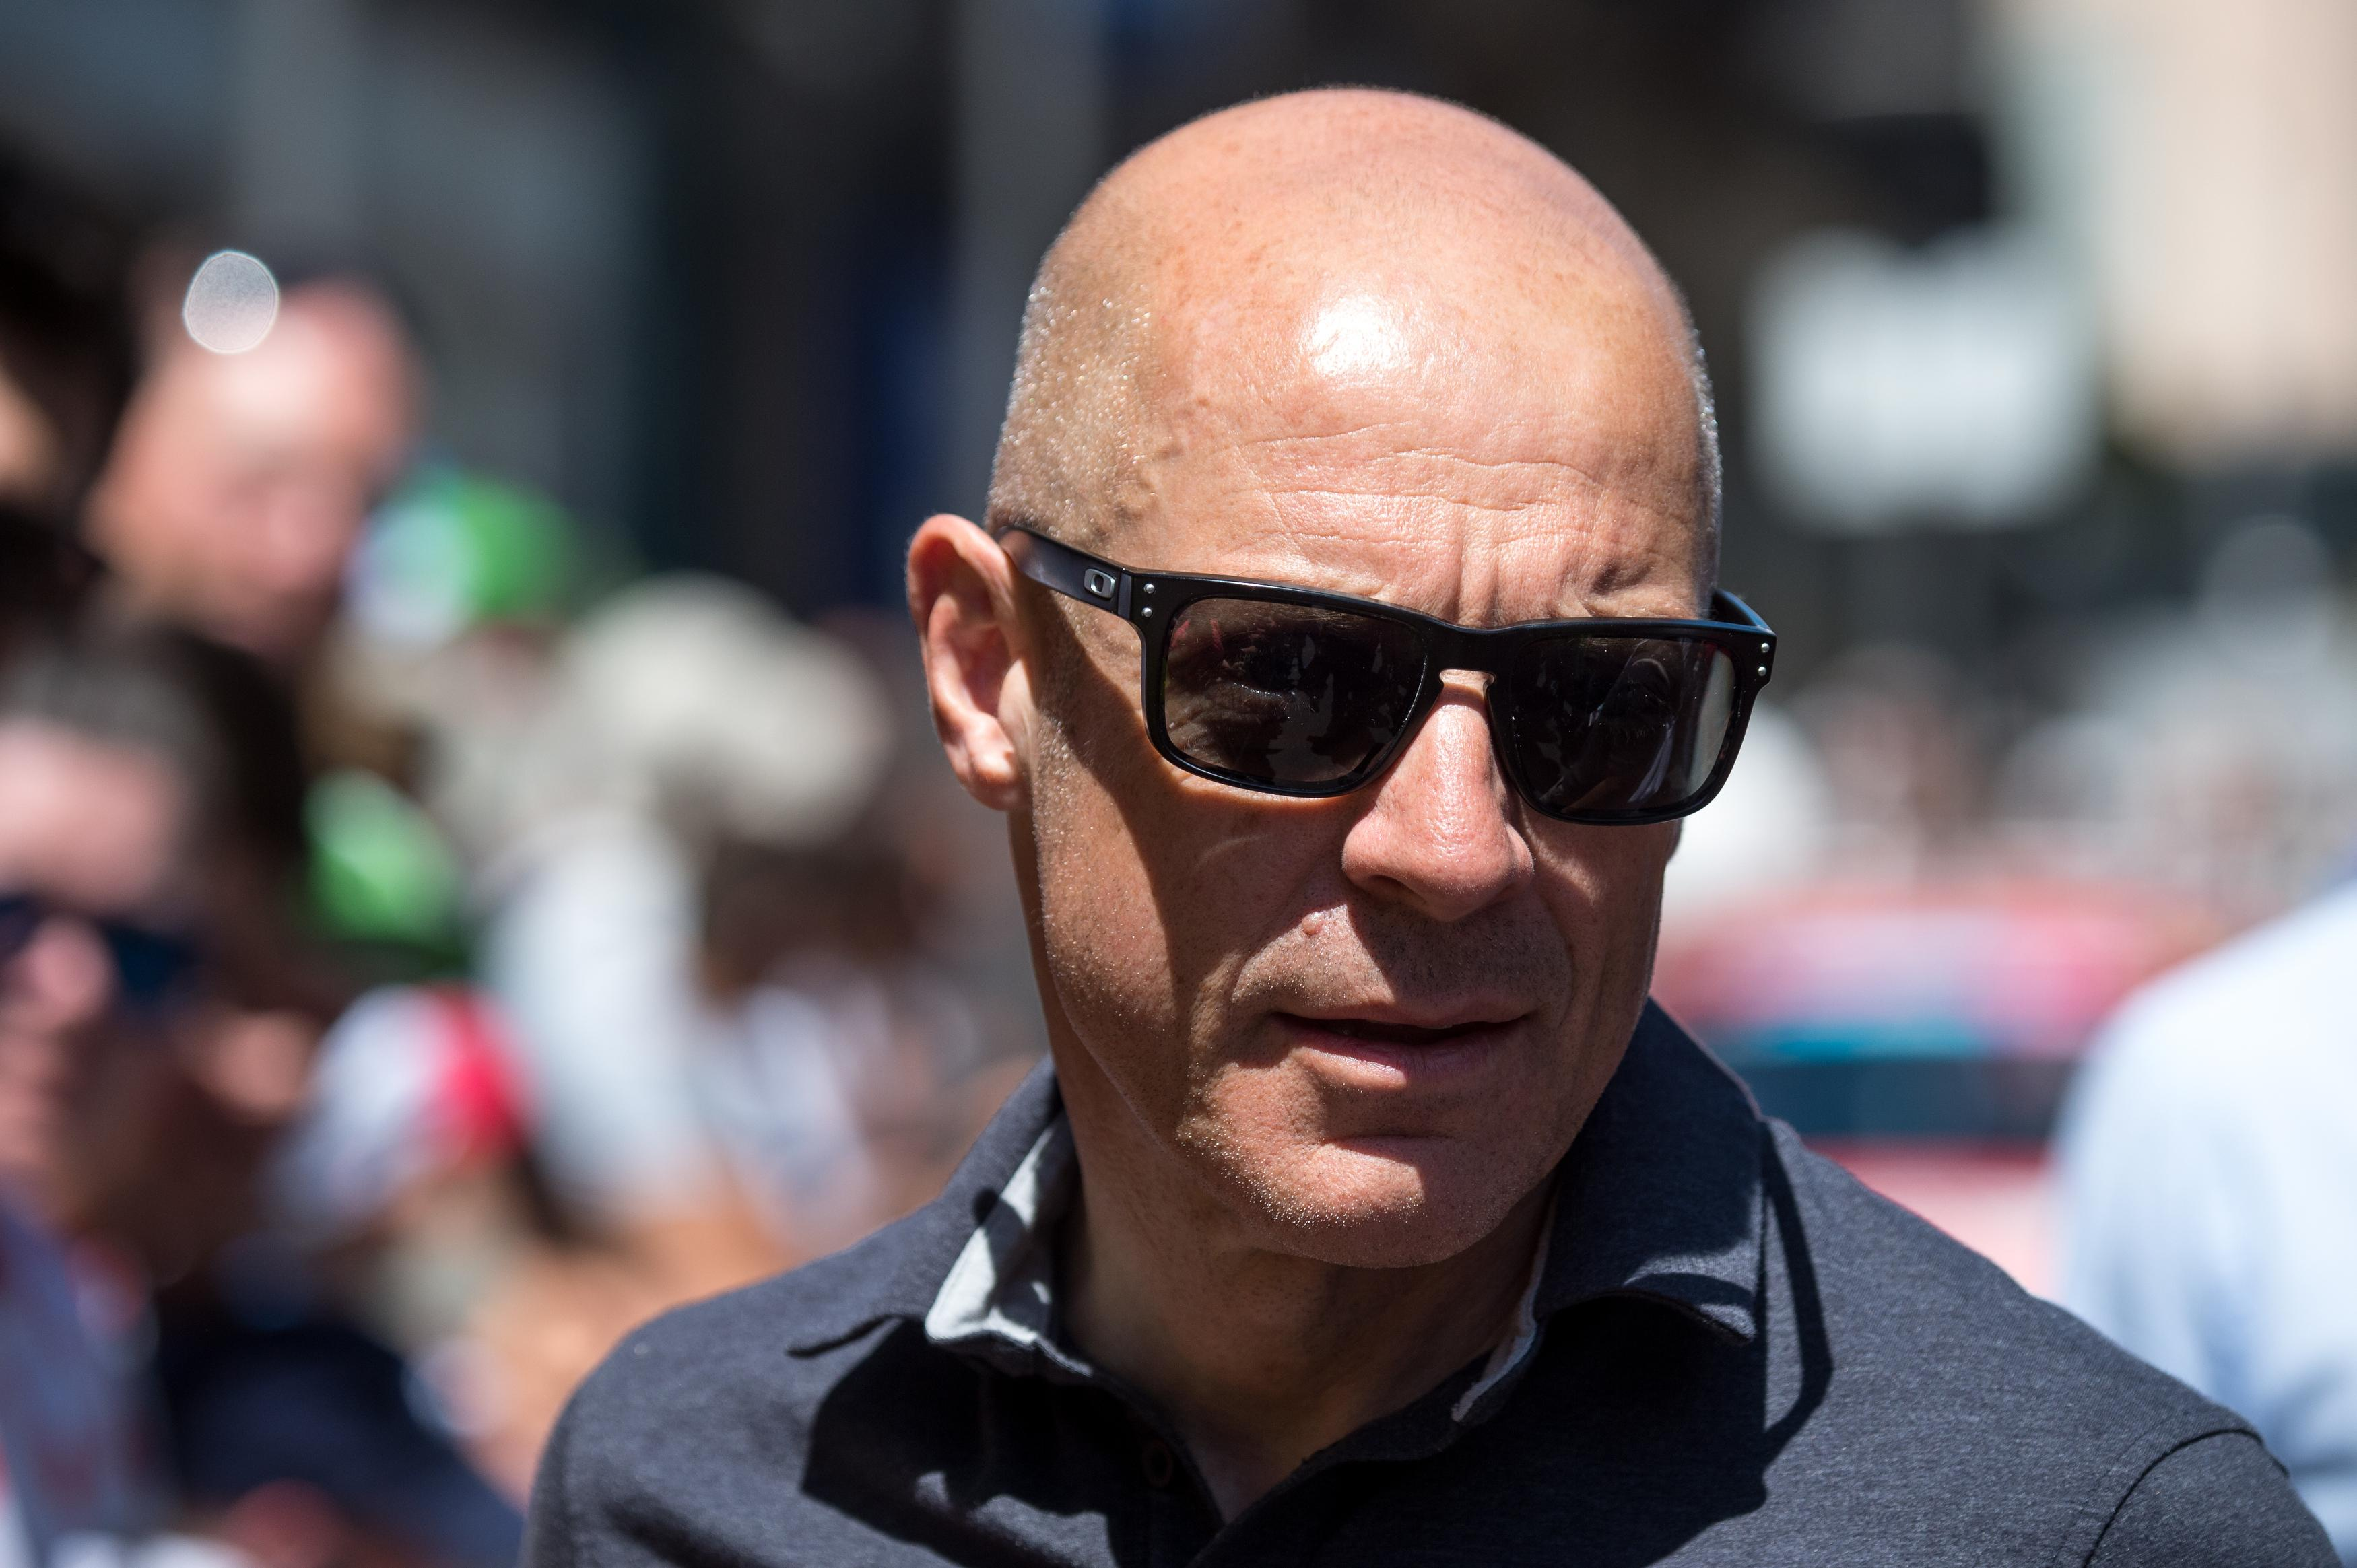 Sir Dave Brailsford is at the centre of the doping scandal